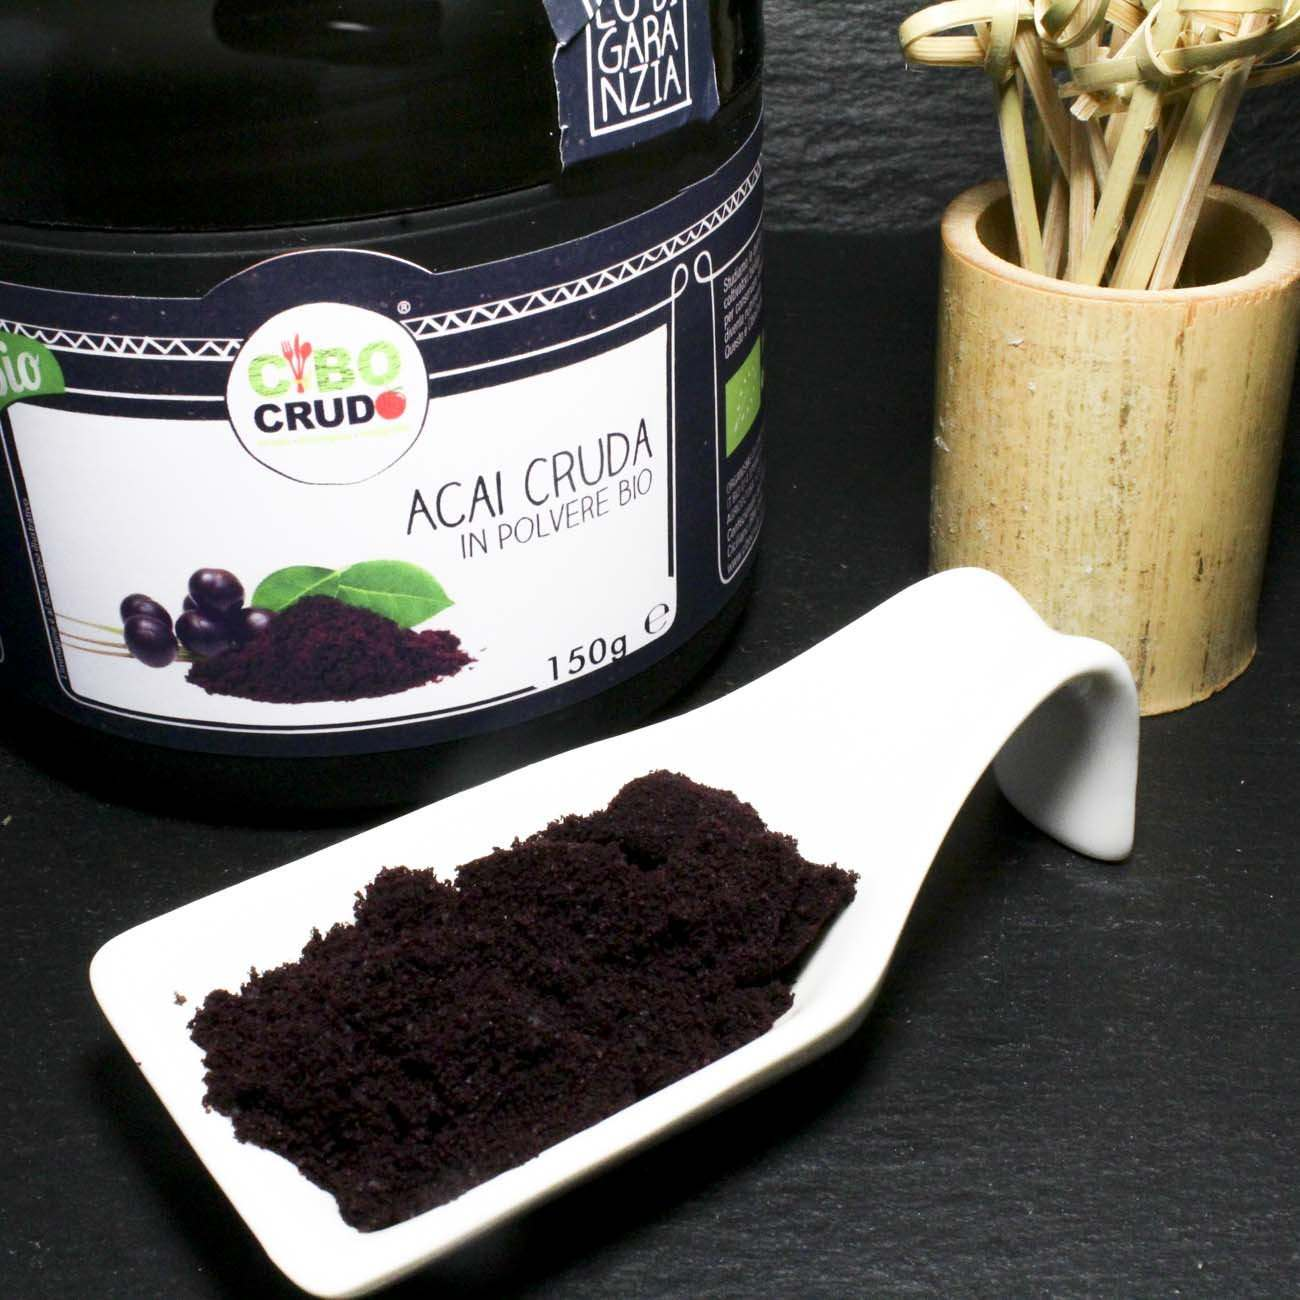 Acai<br/>In Polvere Cruda Bio - Acai Powder Raw Organic - 150g